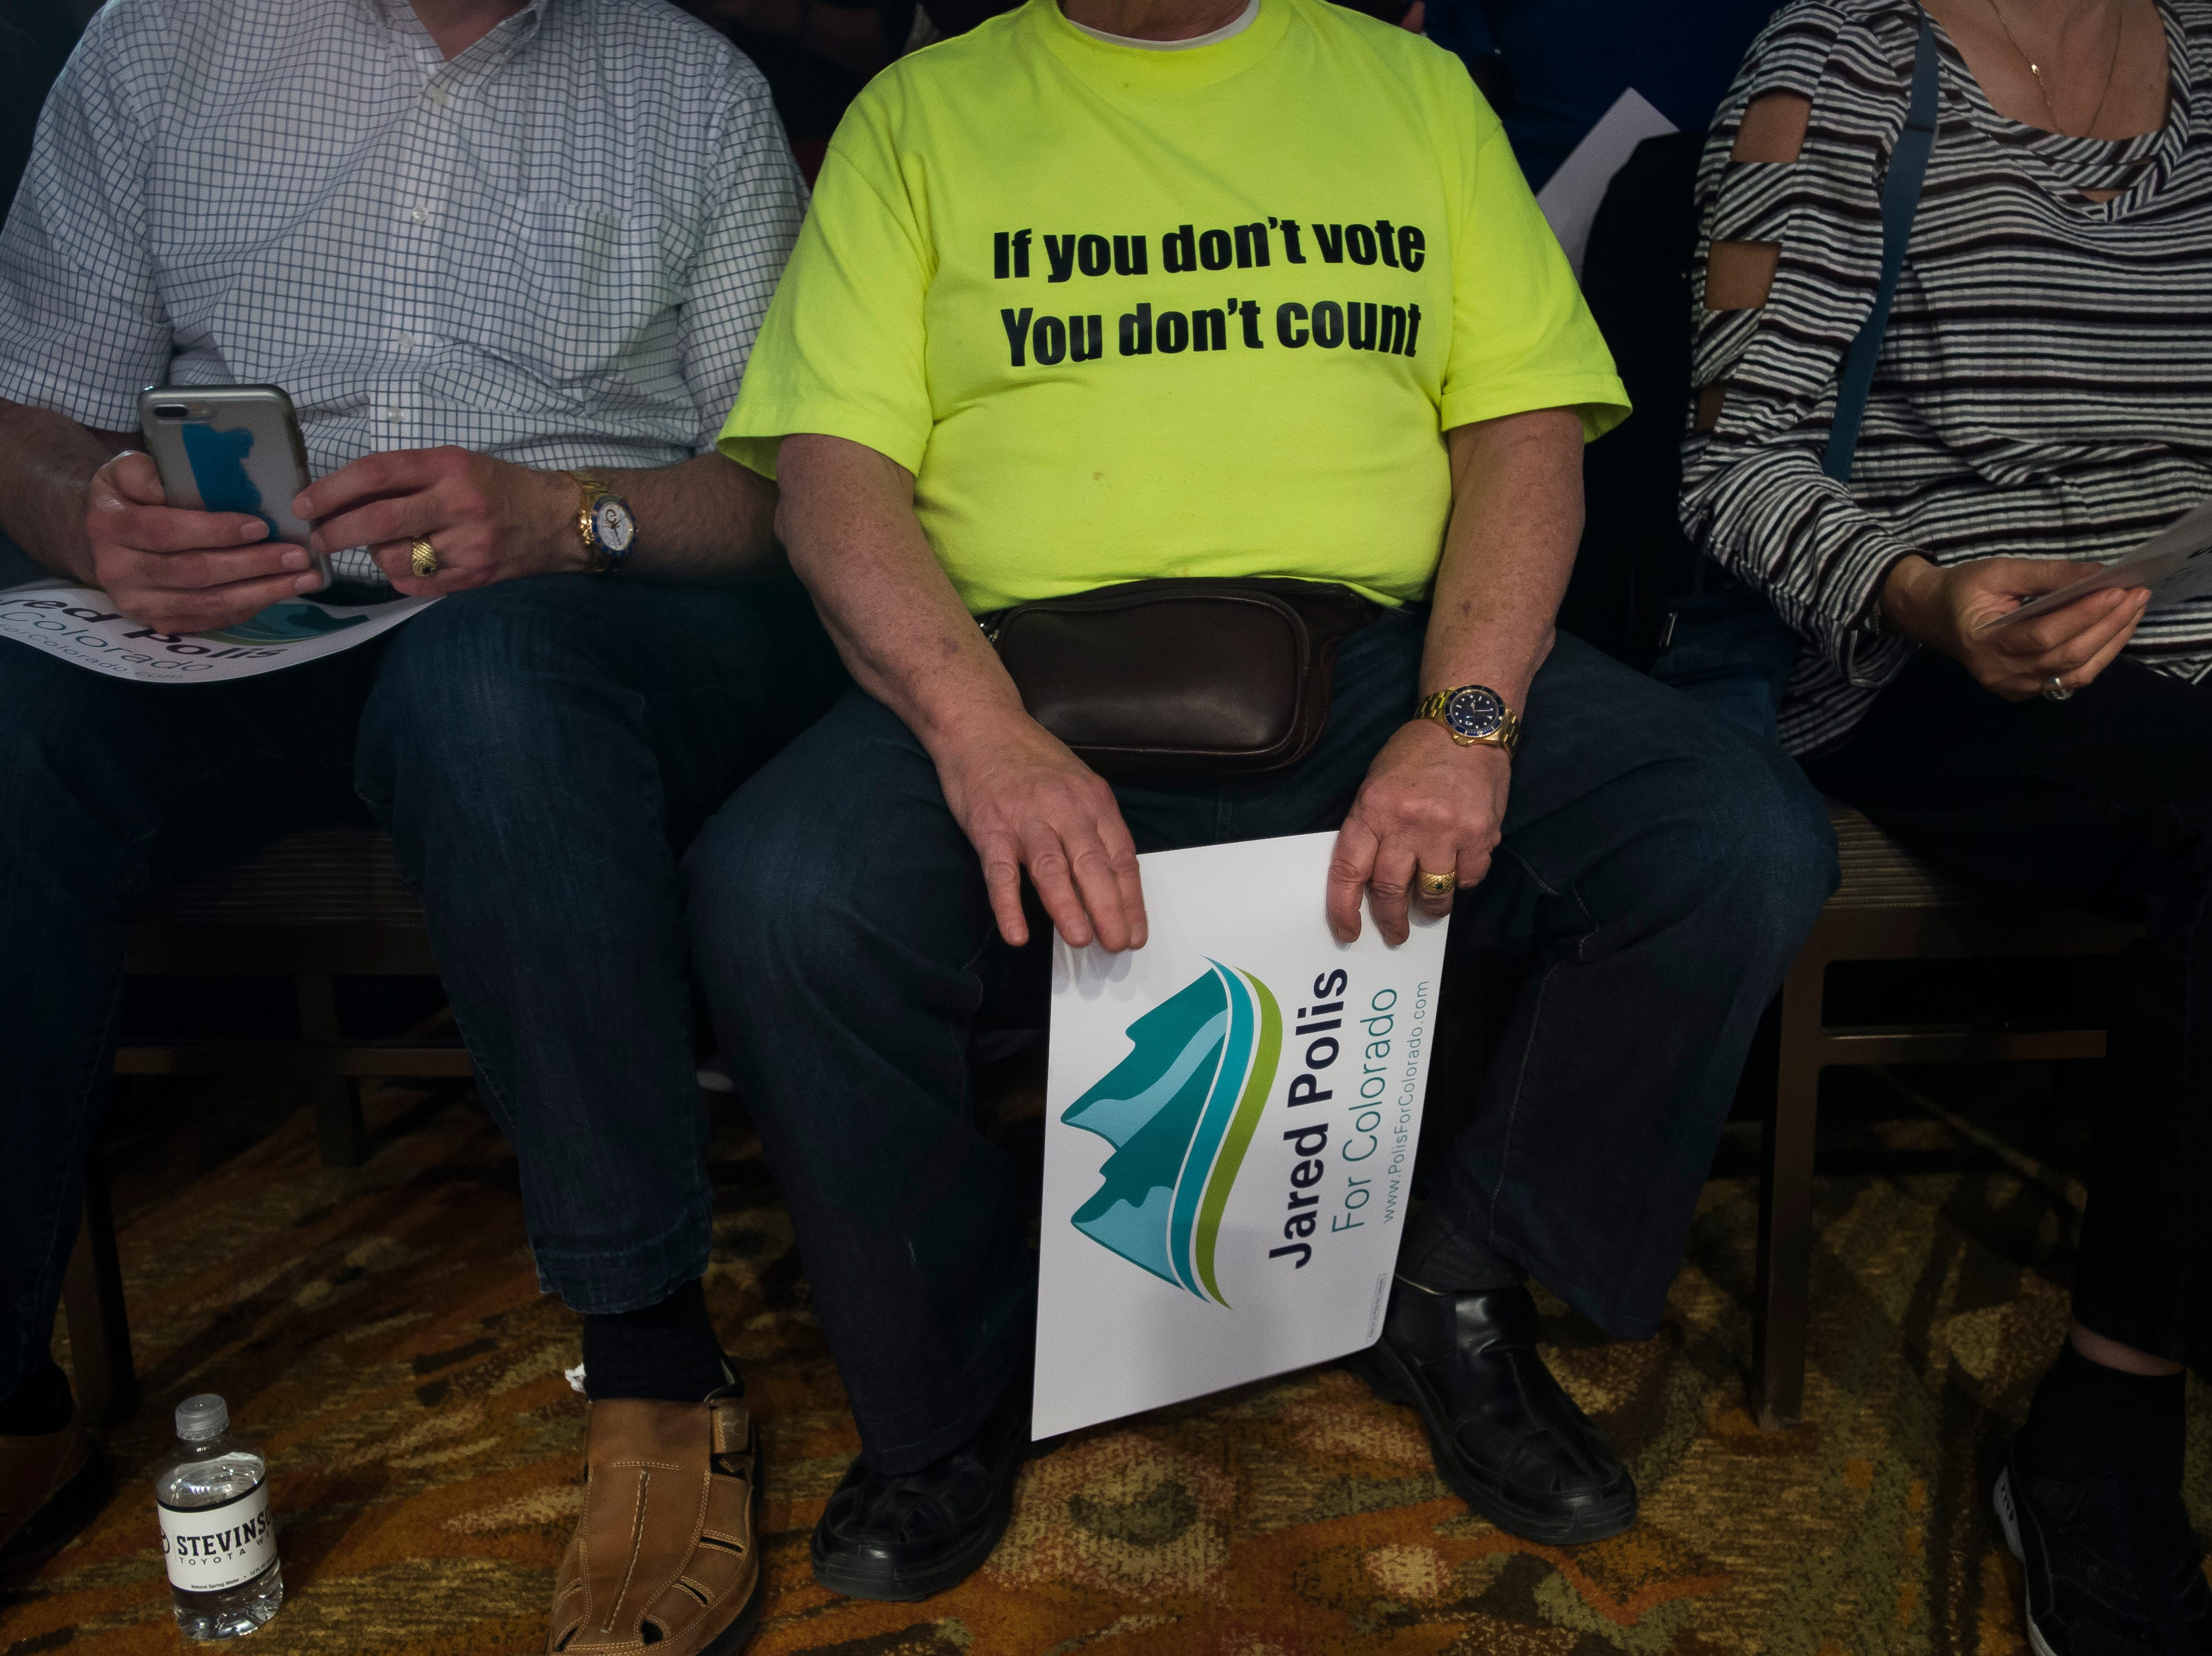 Golden, Colo., resident John Crisci holds a Jared Polis sign while sitting in the front row at Democratic candidate for Colorado governor Jared Polis's election watch party on Tuesday, Nov. 6, 2018, at the Westin Denver Downtown hotel in Denver, Colo.